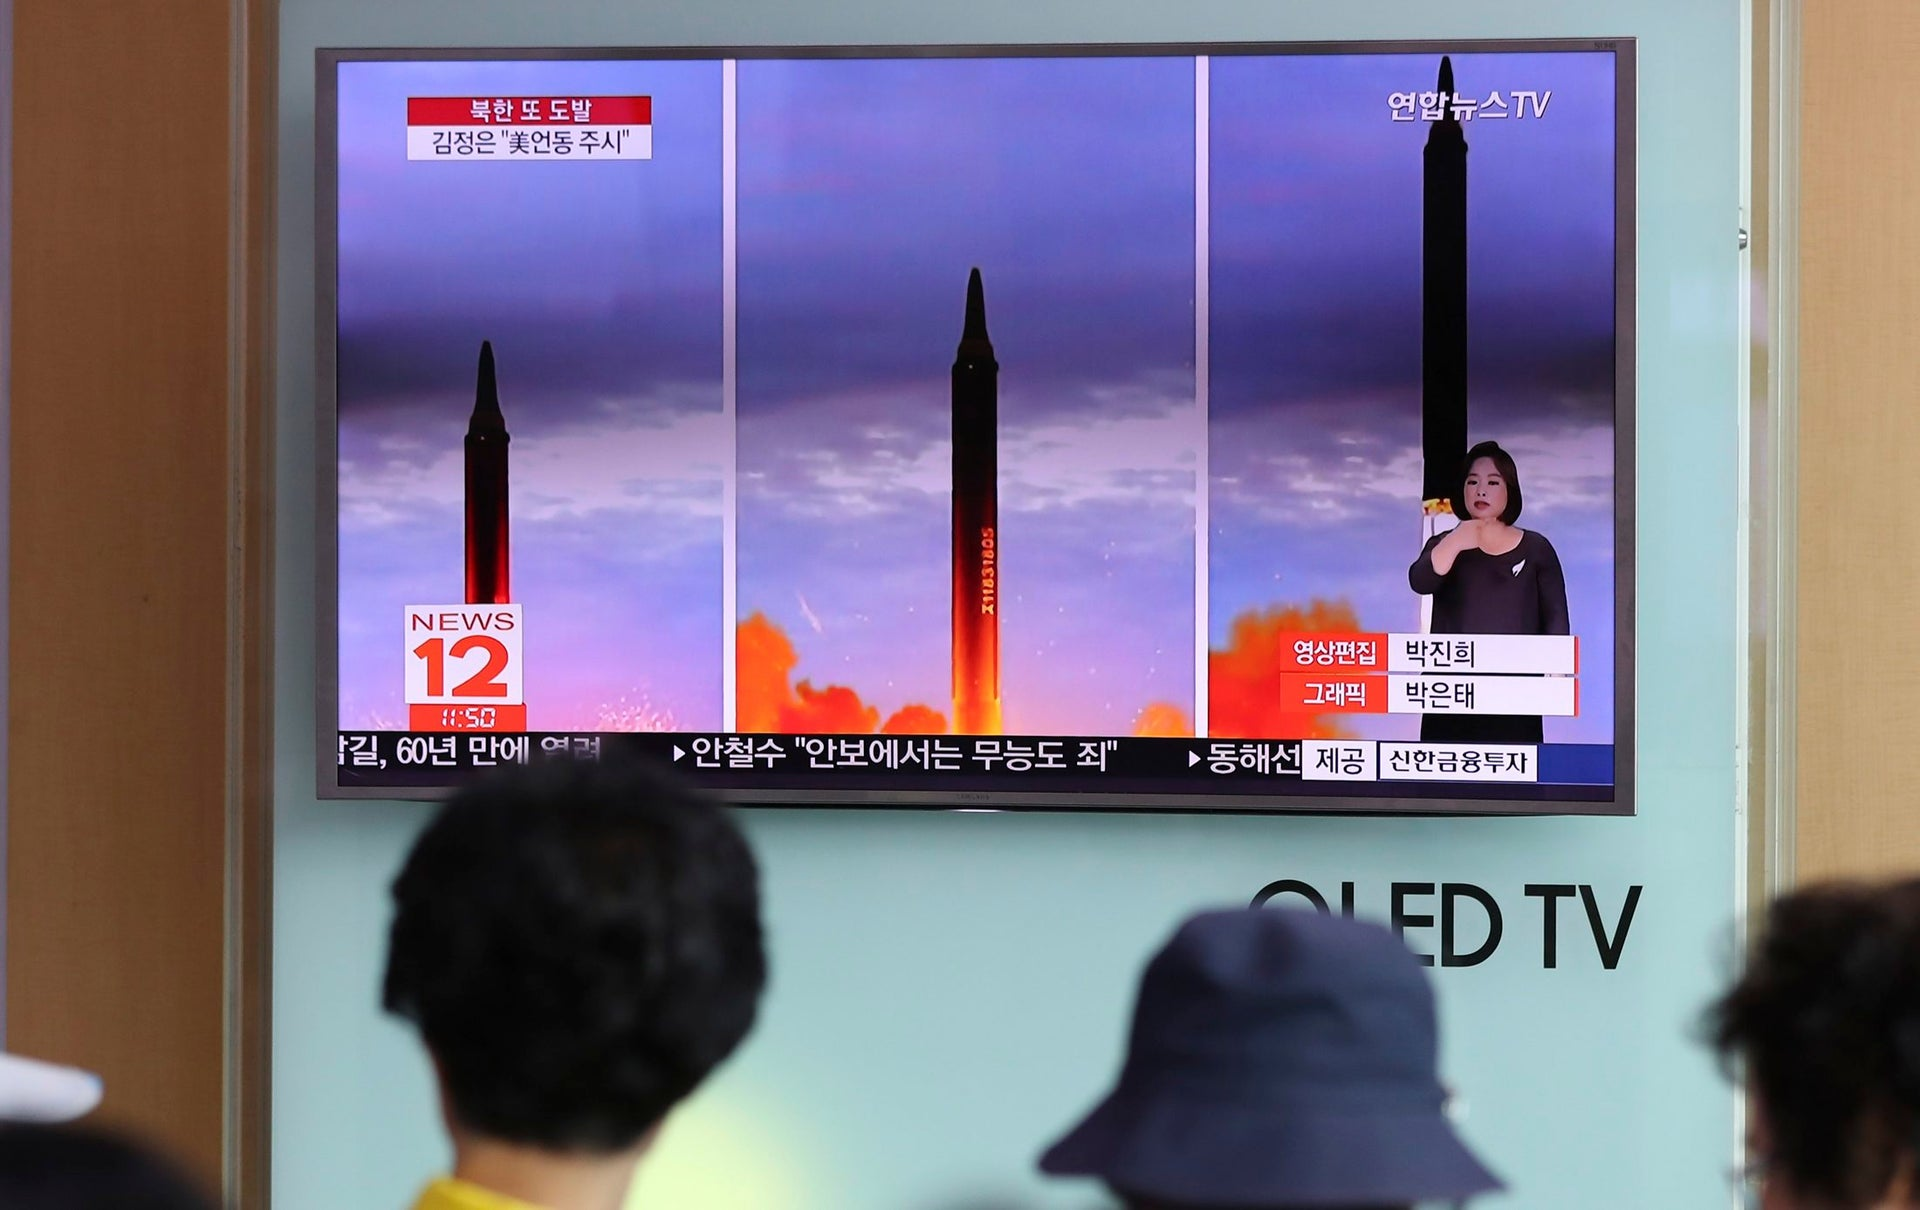 People watch a TV screen showing a local news program reporting about North Korea's missile launch at Seoul Train Station in Seoul, South Korea, Aug. 30, 2017.